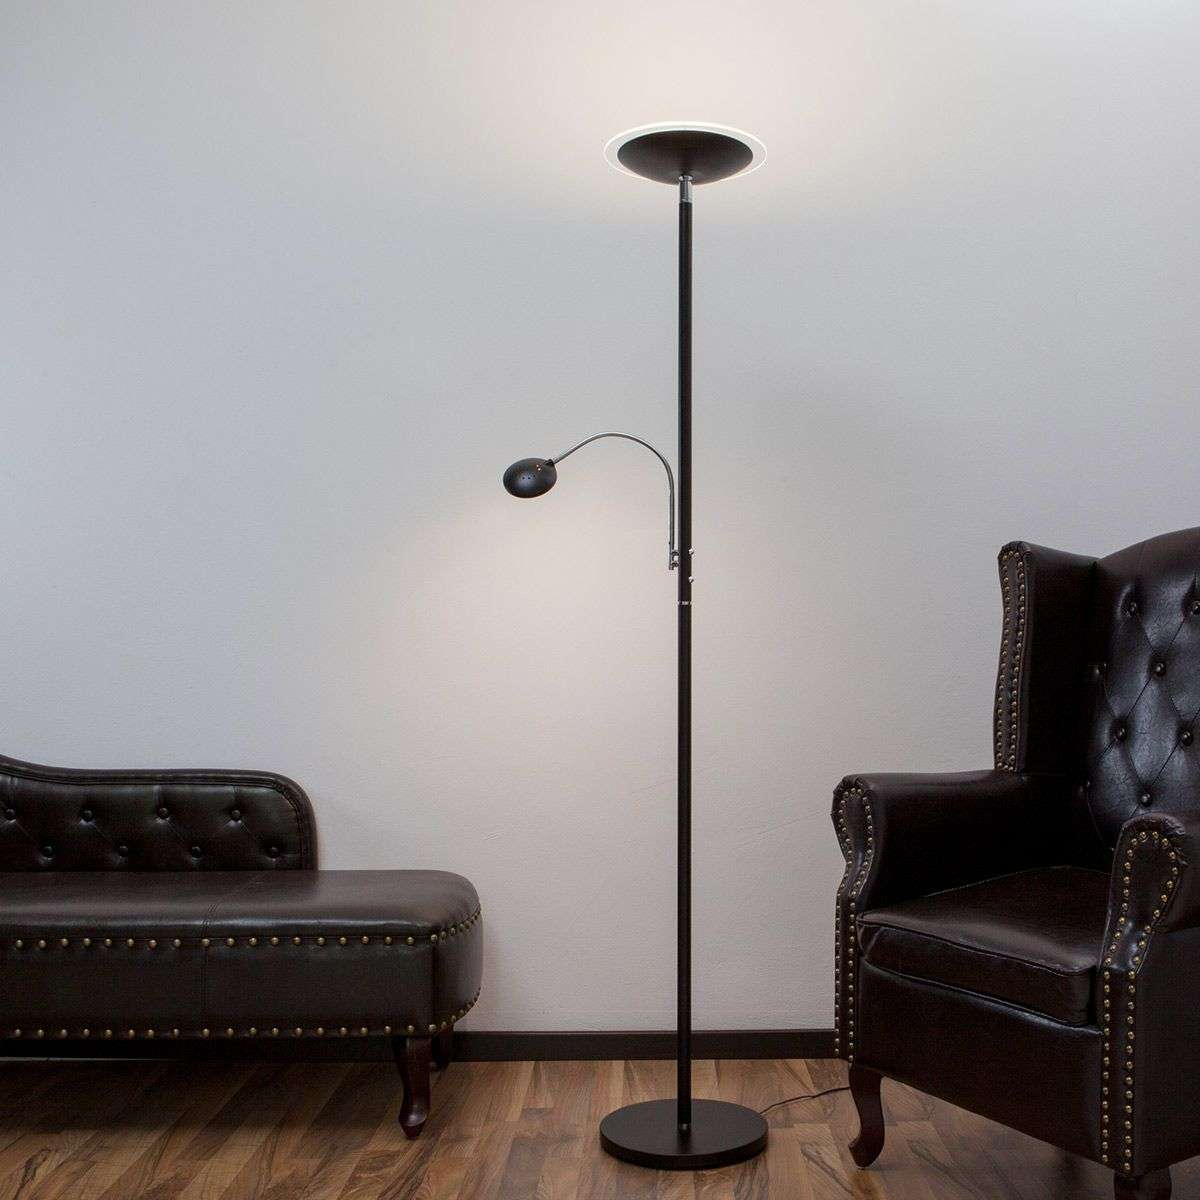 Uplight Malea with LED   reading arm, black | Lights.co.uk for Indoor Street Light Lamp  585eri